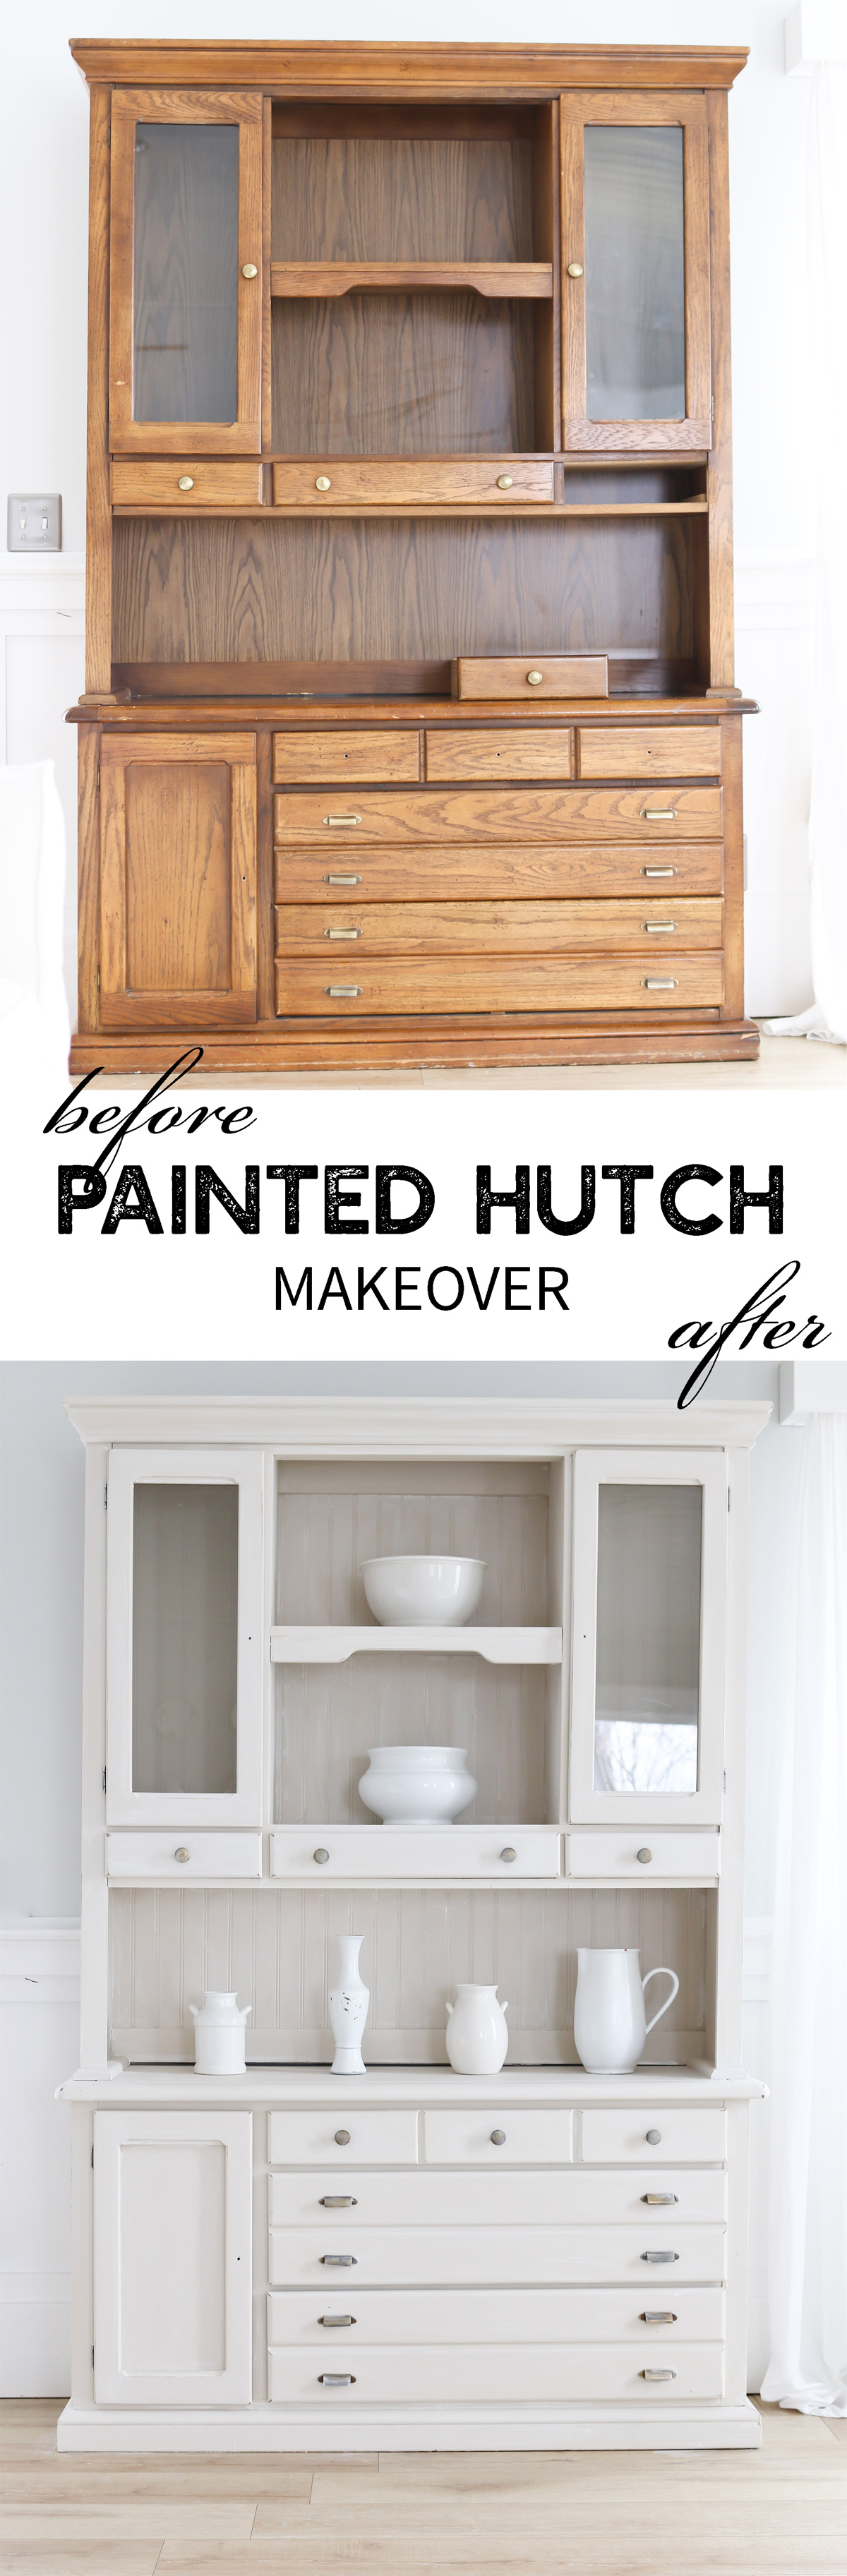 DIY PAINTED HUTCH MAKEOVER BY TIDBITS